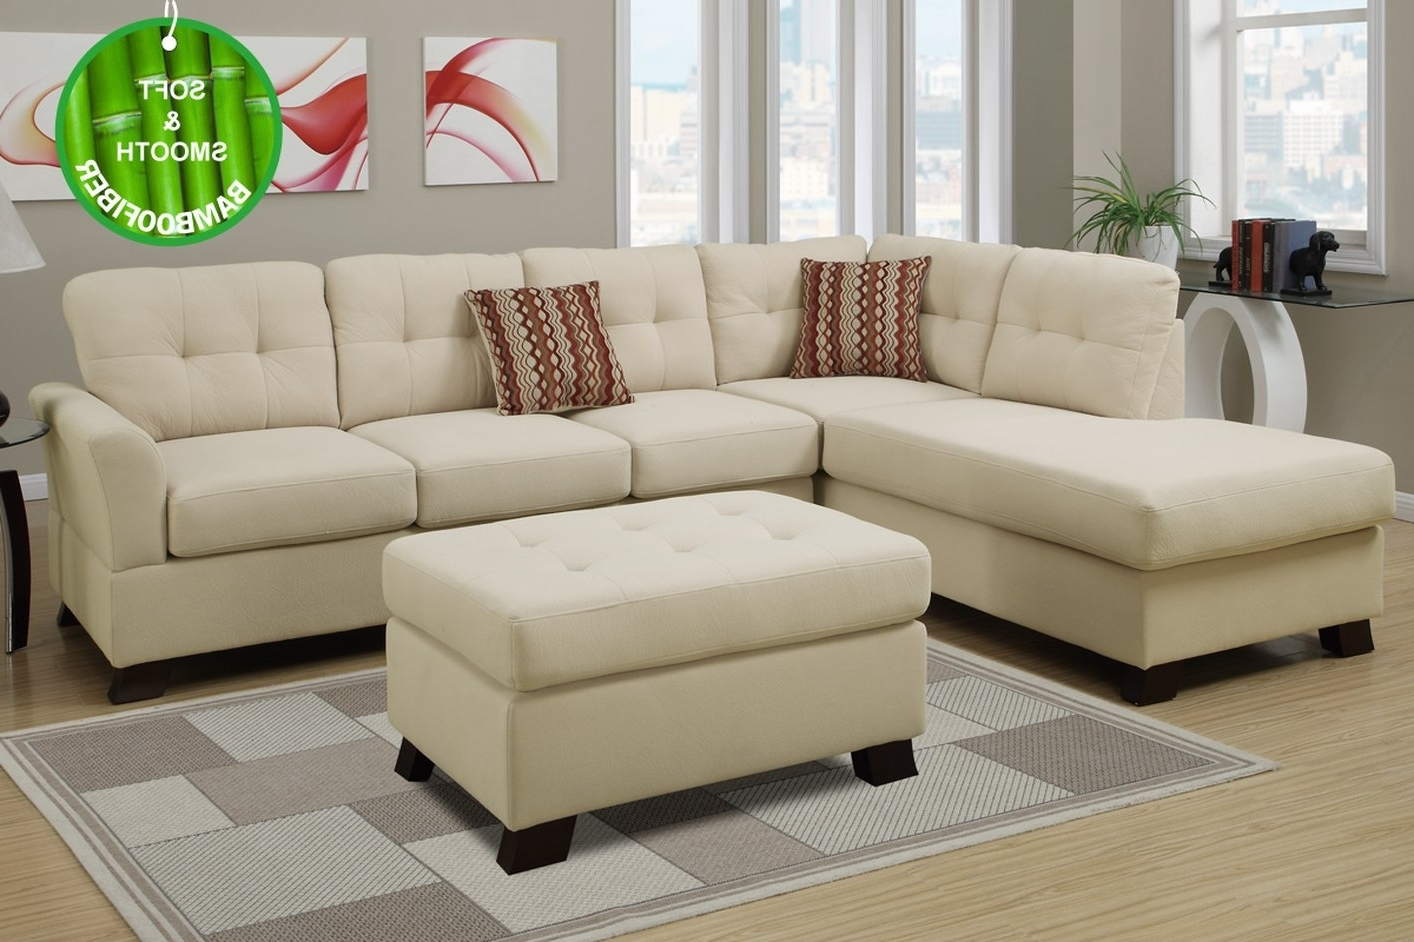 Beige Sectional Sofas For Most Recently Released Beige Fabric Sectional Sofa And Ottoman – Steal A Sofa Furniture (View 3 of 20)